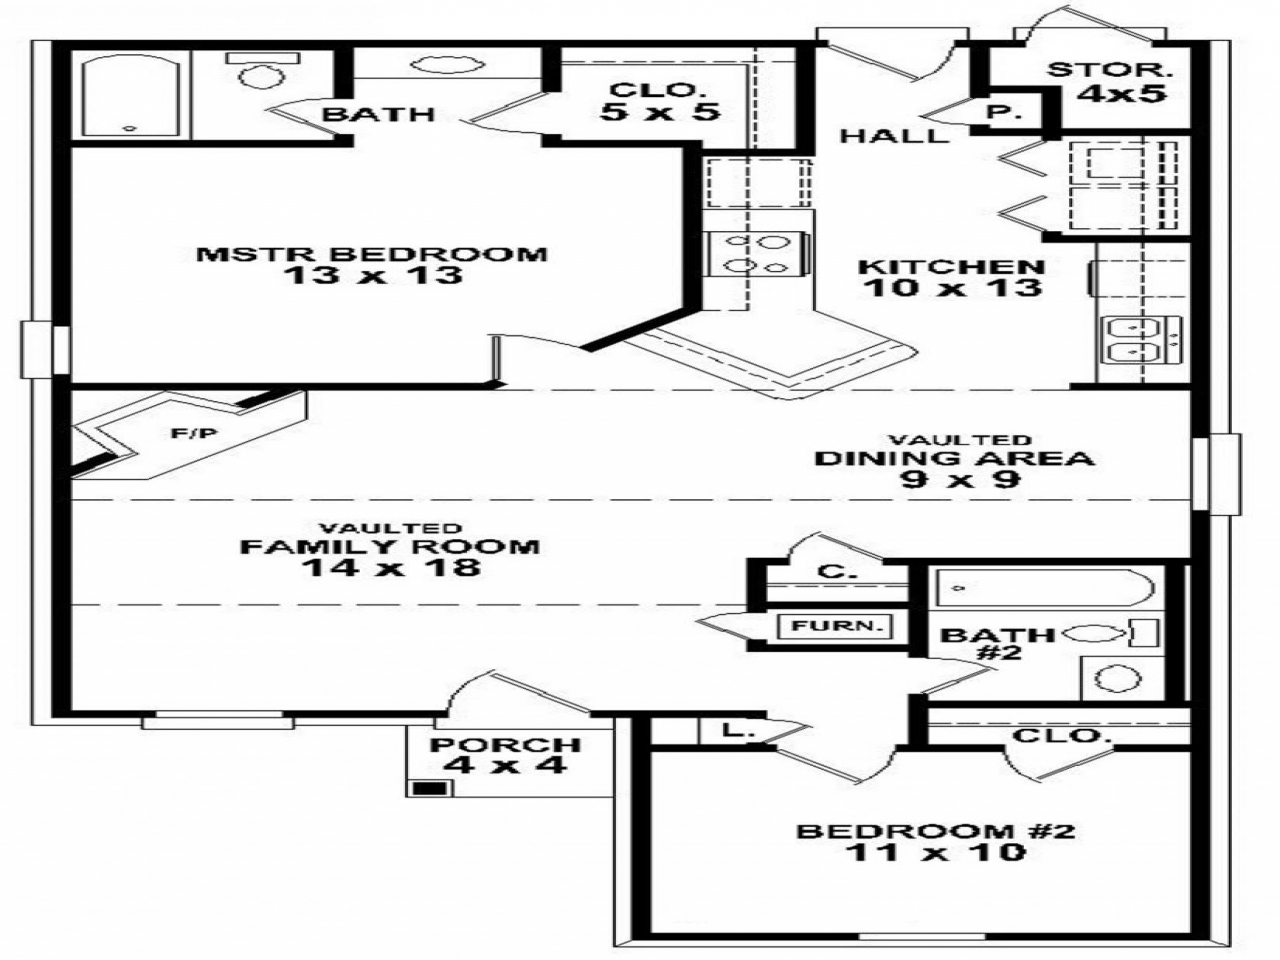 Simple 2 bedroom house floor plans small two bedroom house for 7 bedroom house floor plans